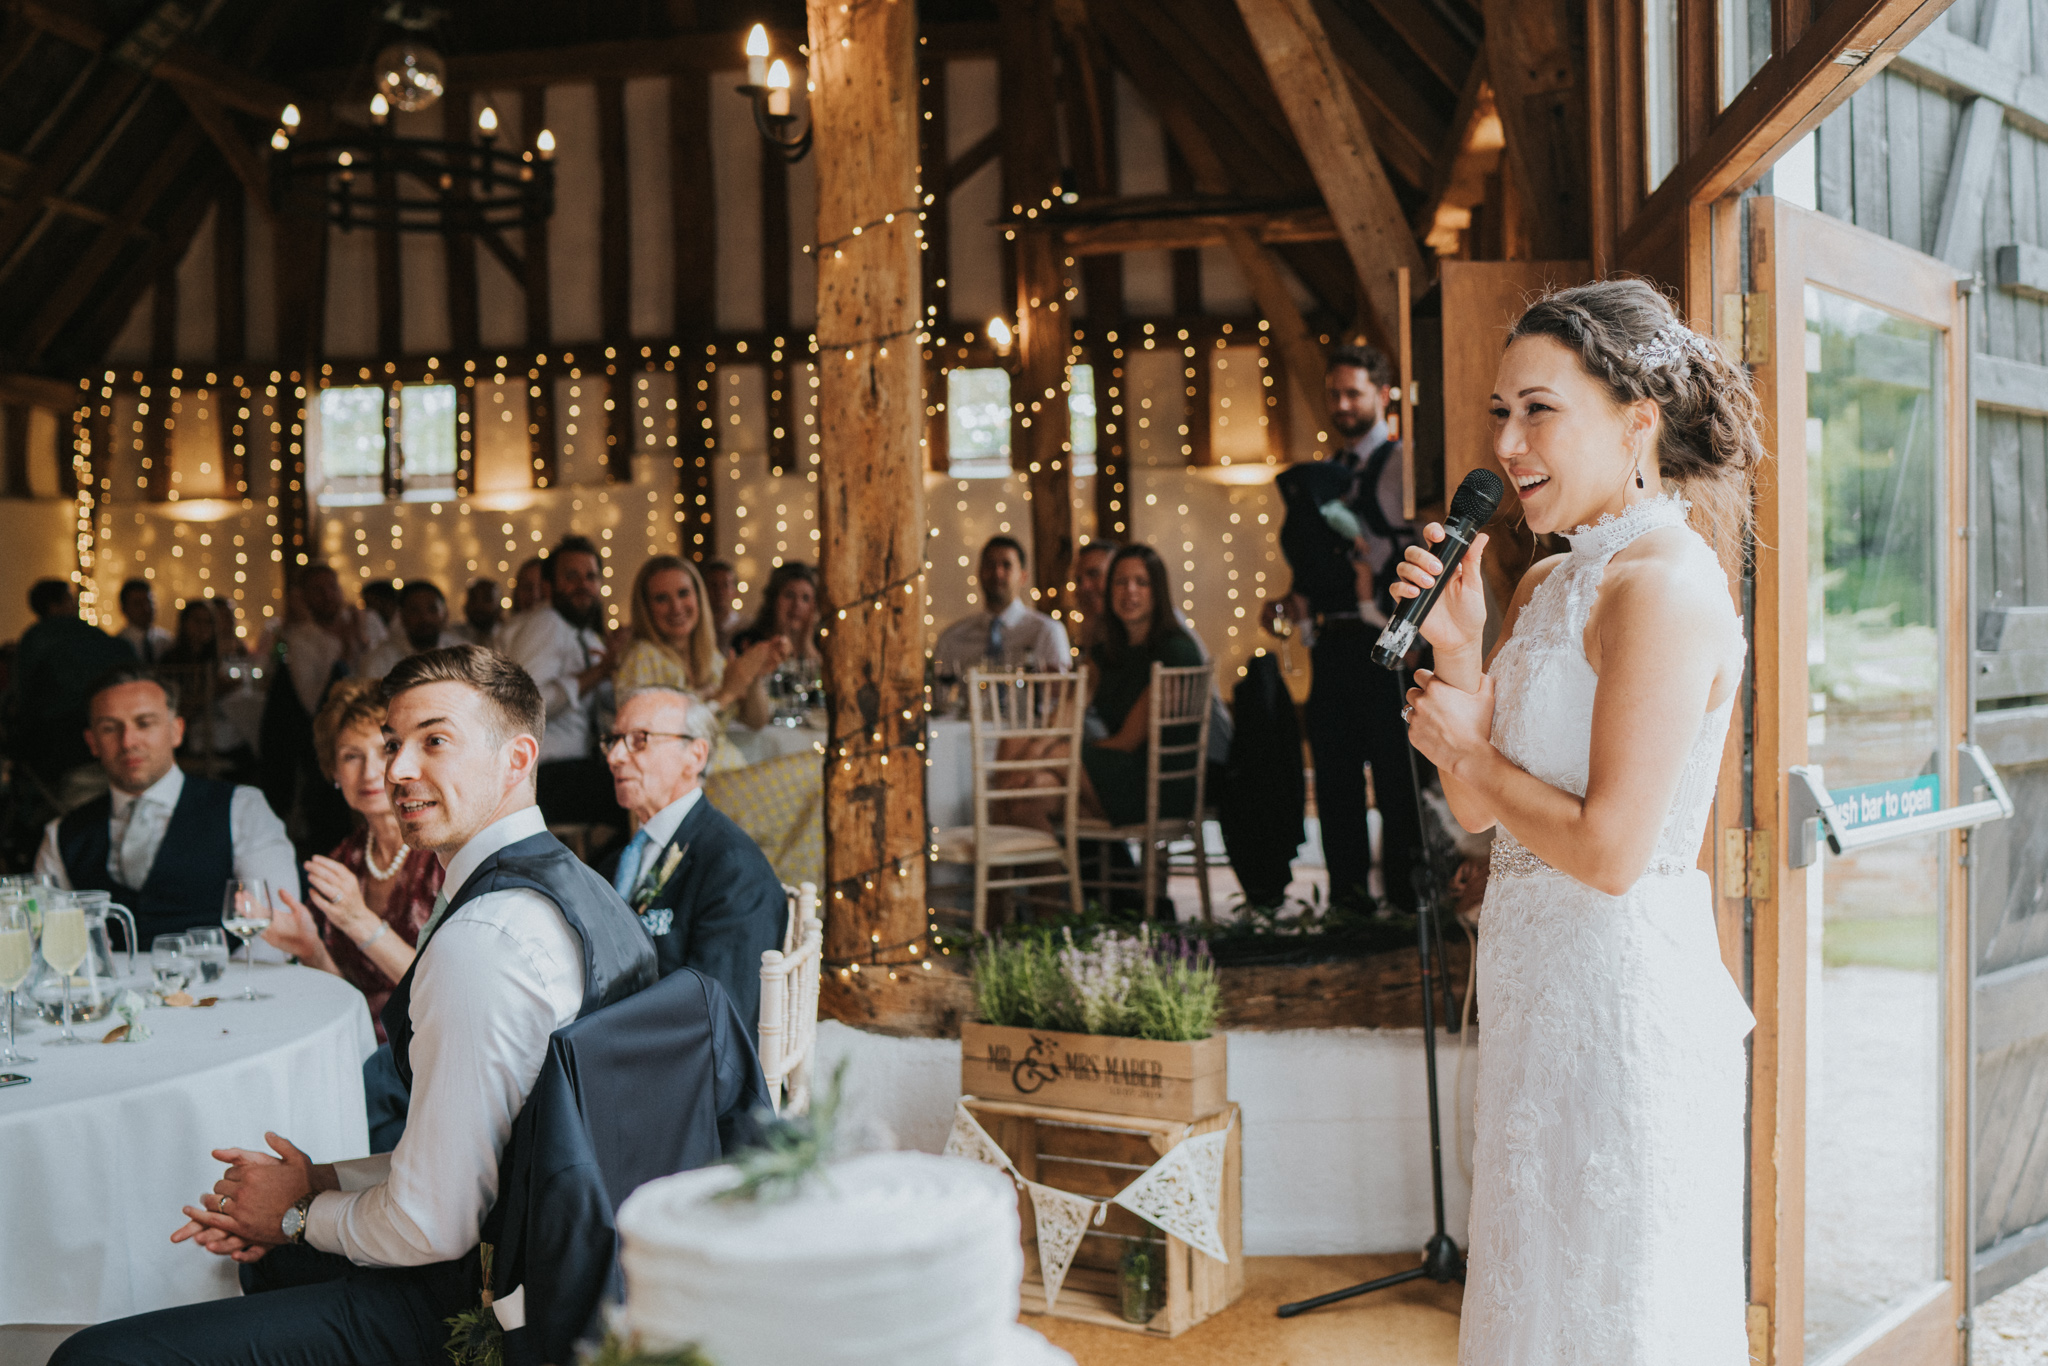 jane-patrick-smeetham-hall-barn-grace-elizabeth-colchester-essex-alternative-wedding-lifestyle-photographer-essex-suffolk-norfolk-devon (40 of 52).jpg